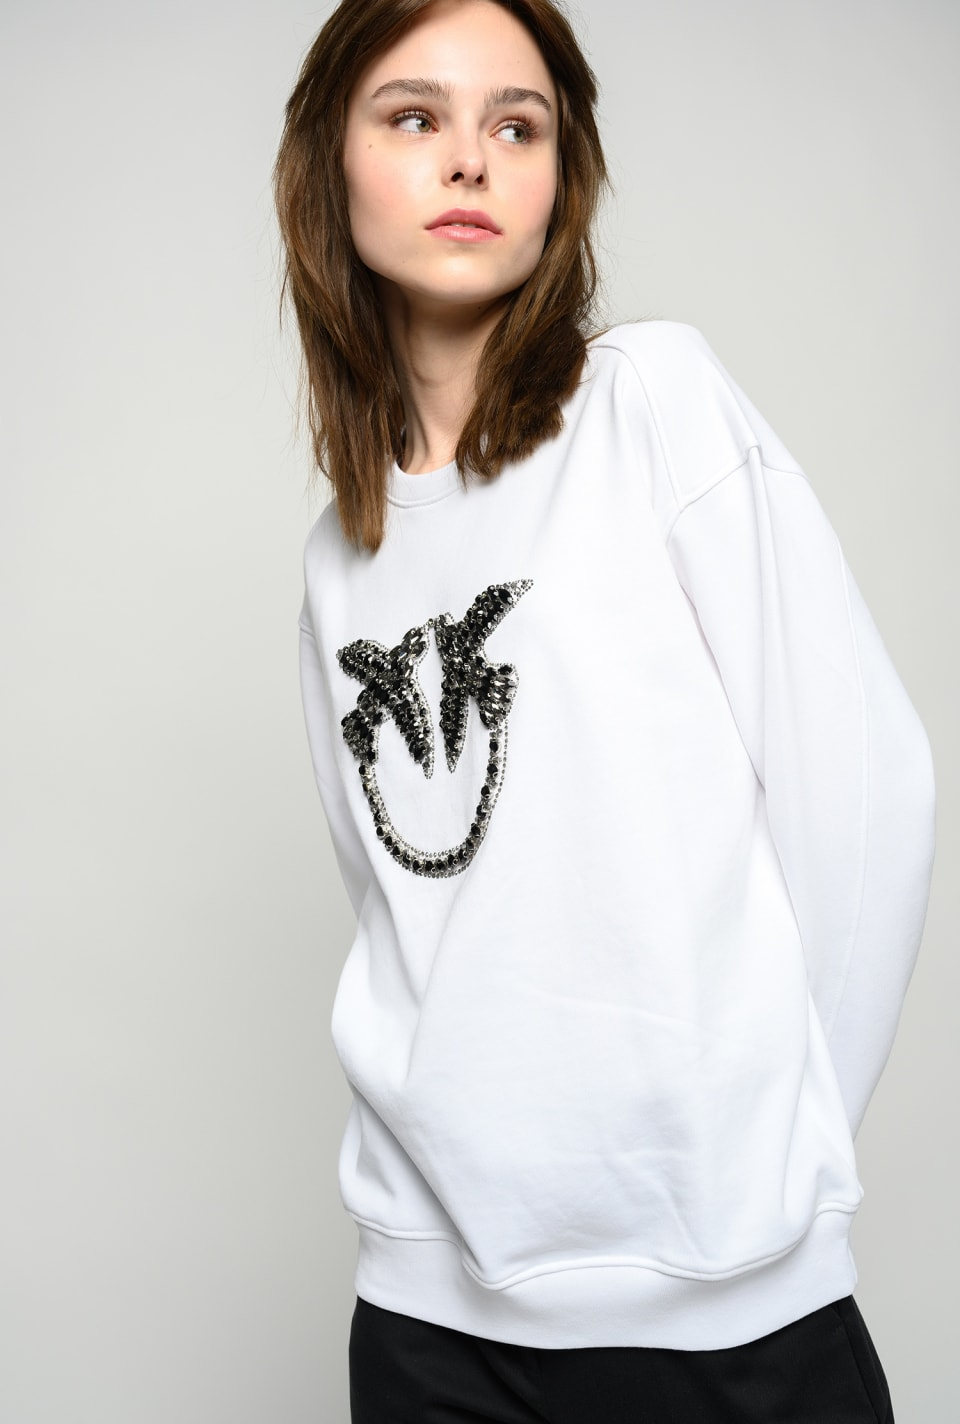 Love Birds embroidery sweatshirt - Pinko